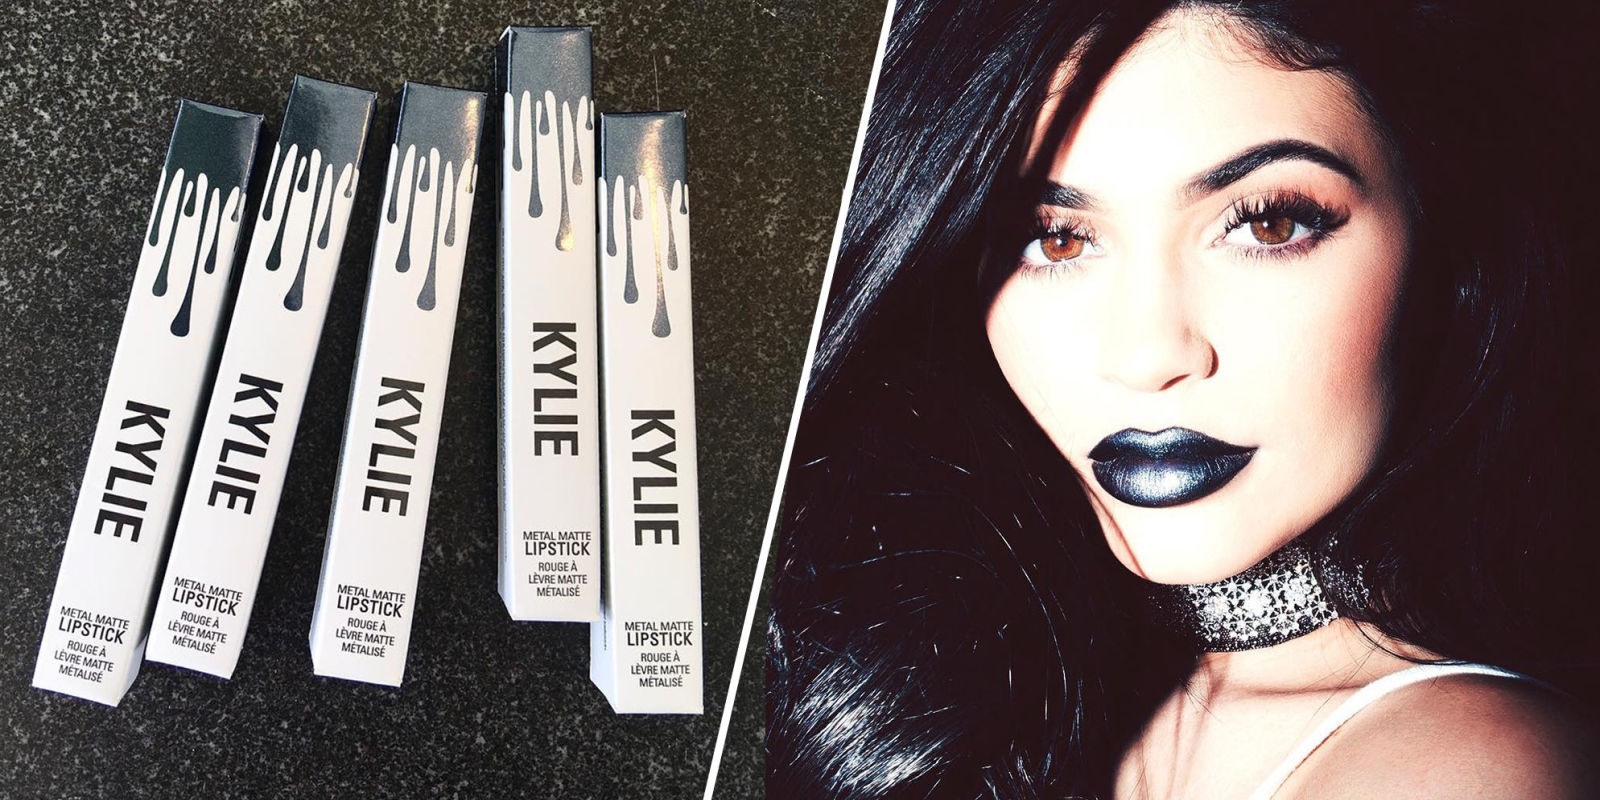 Romantic Things To Do In The Bedroom Kylie Jenner Metallic Matte Lipkit Kylie Cosmetics